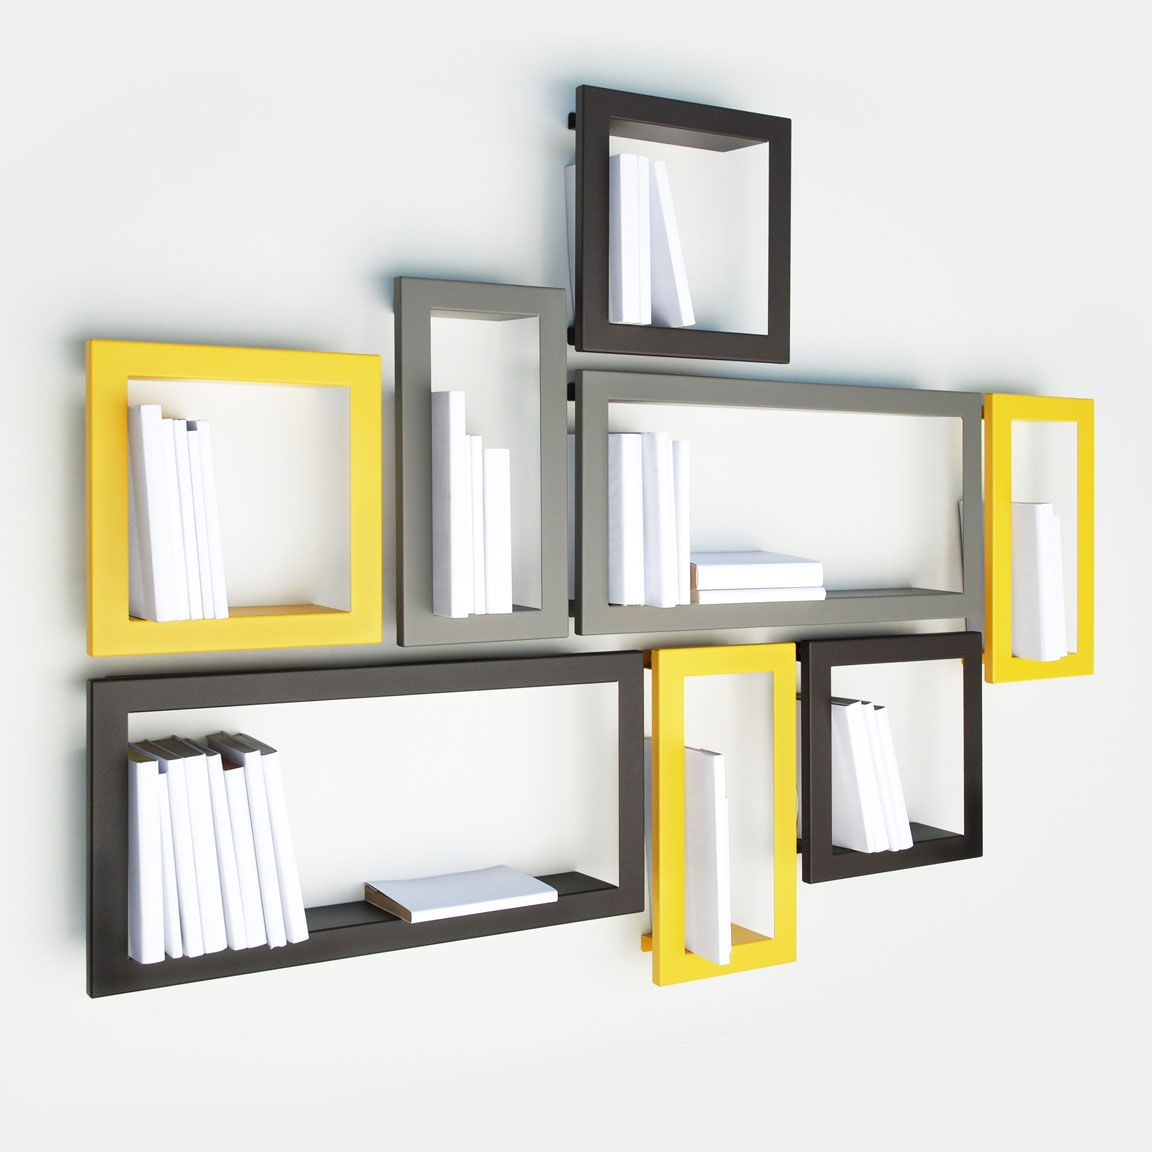 Modern Wall Mounted Shelves Throughout Wall Mounted Shelves (#3 of 12)